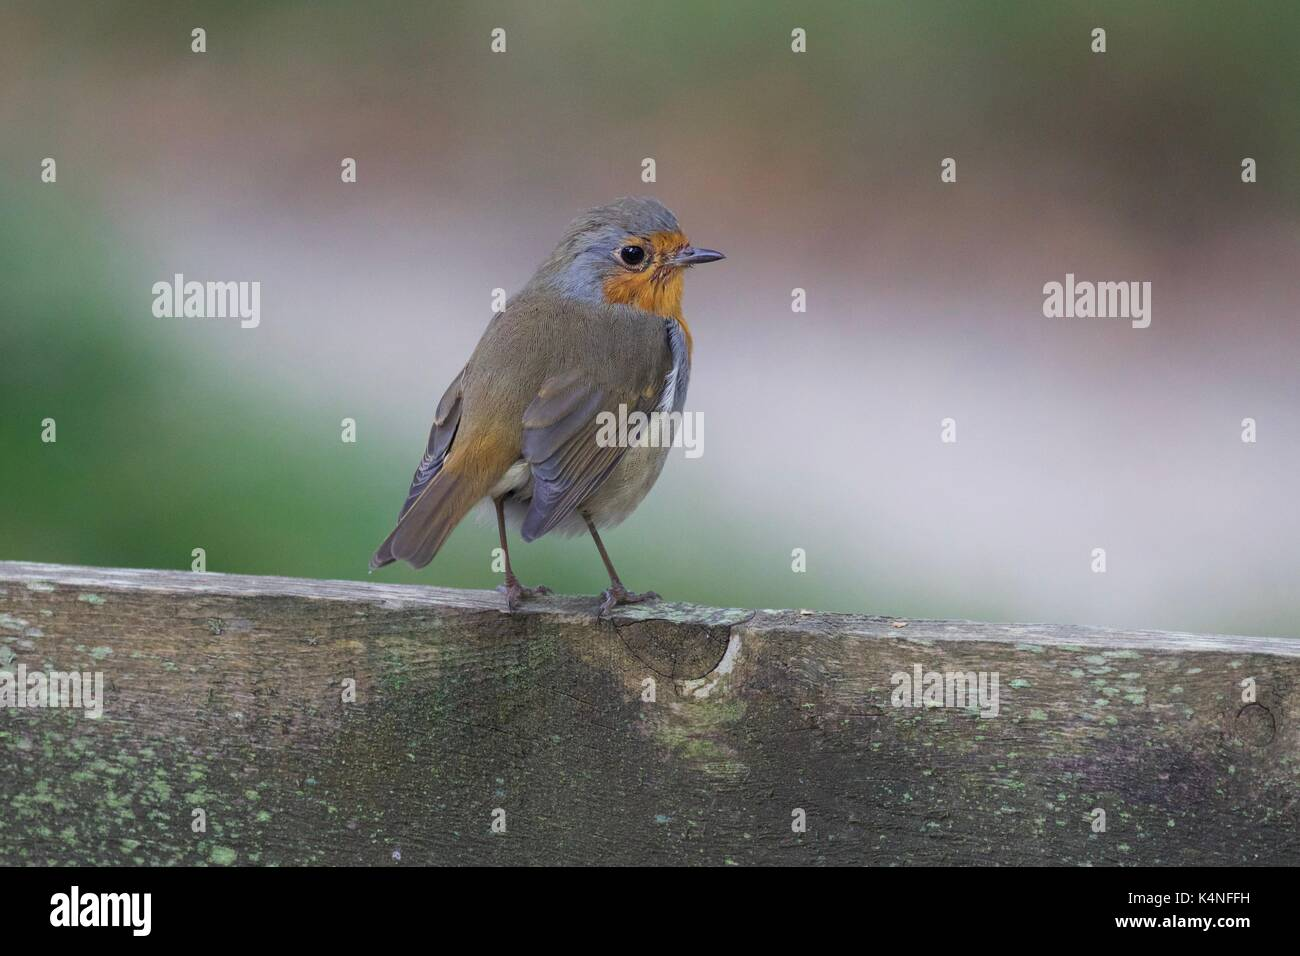 Robin perched on wooden fence - Stock Image